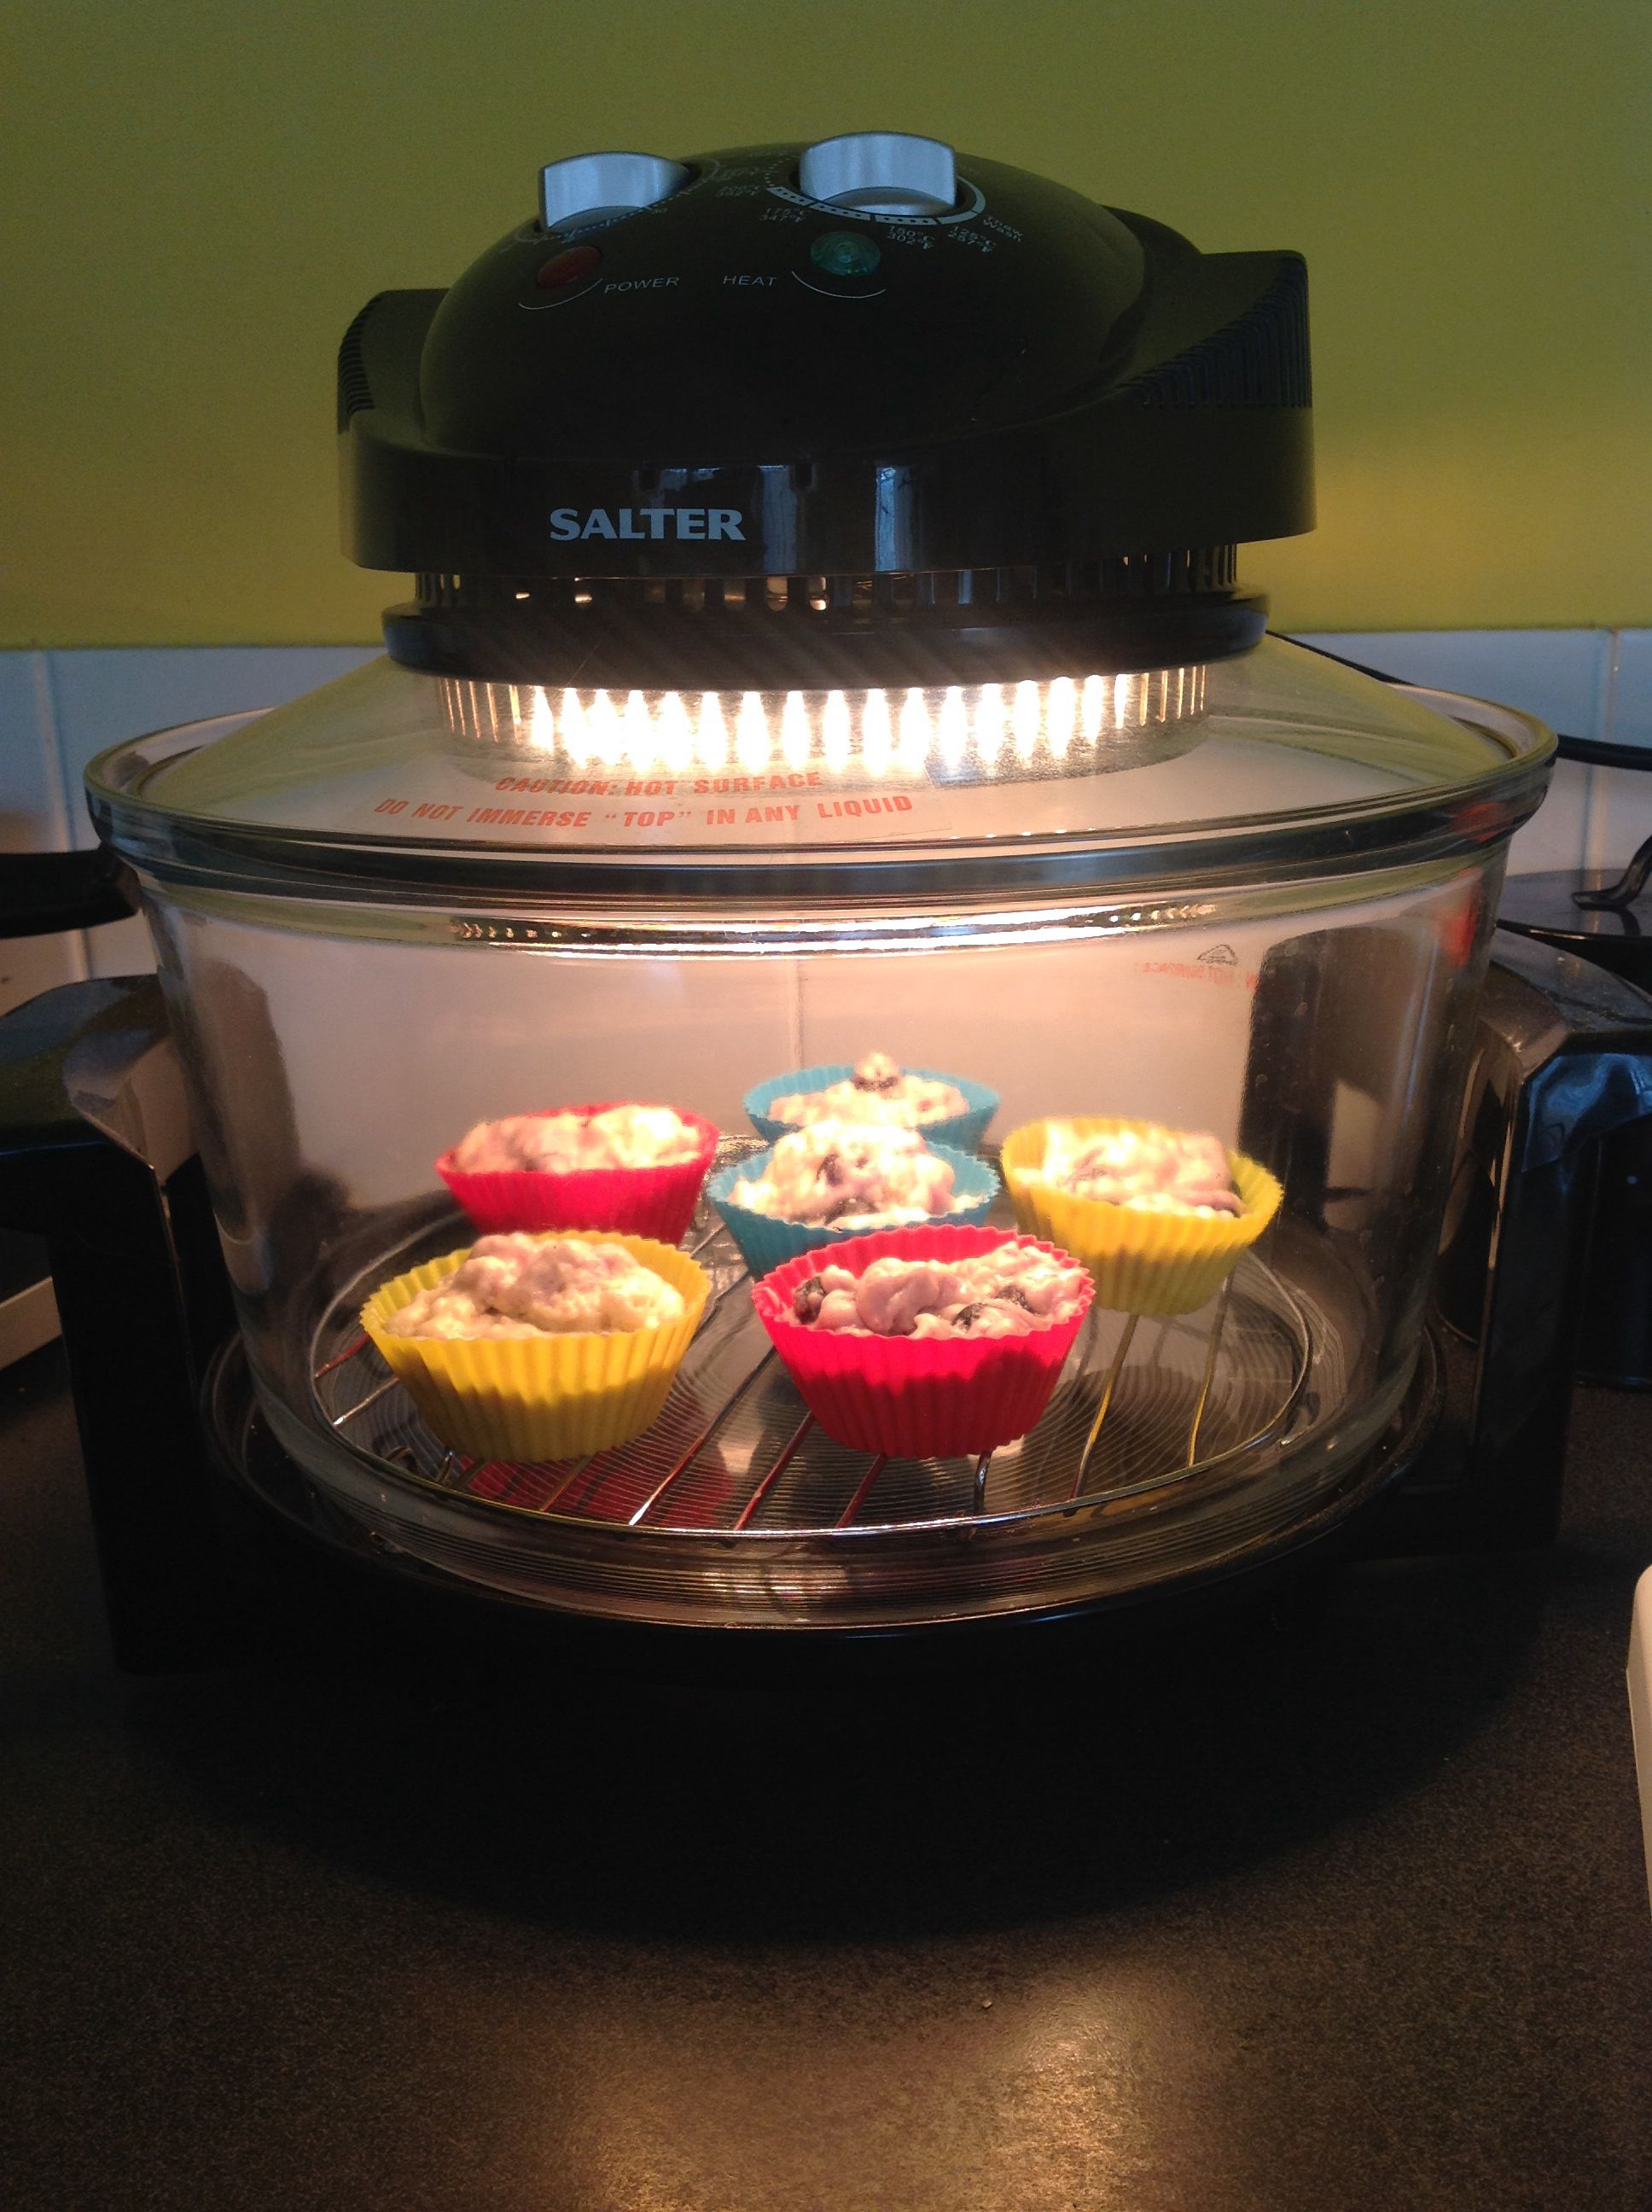 Cook Blueberry Muffins In Your Halogen Oven In 12 15 Mins Please